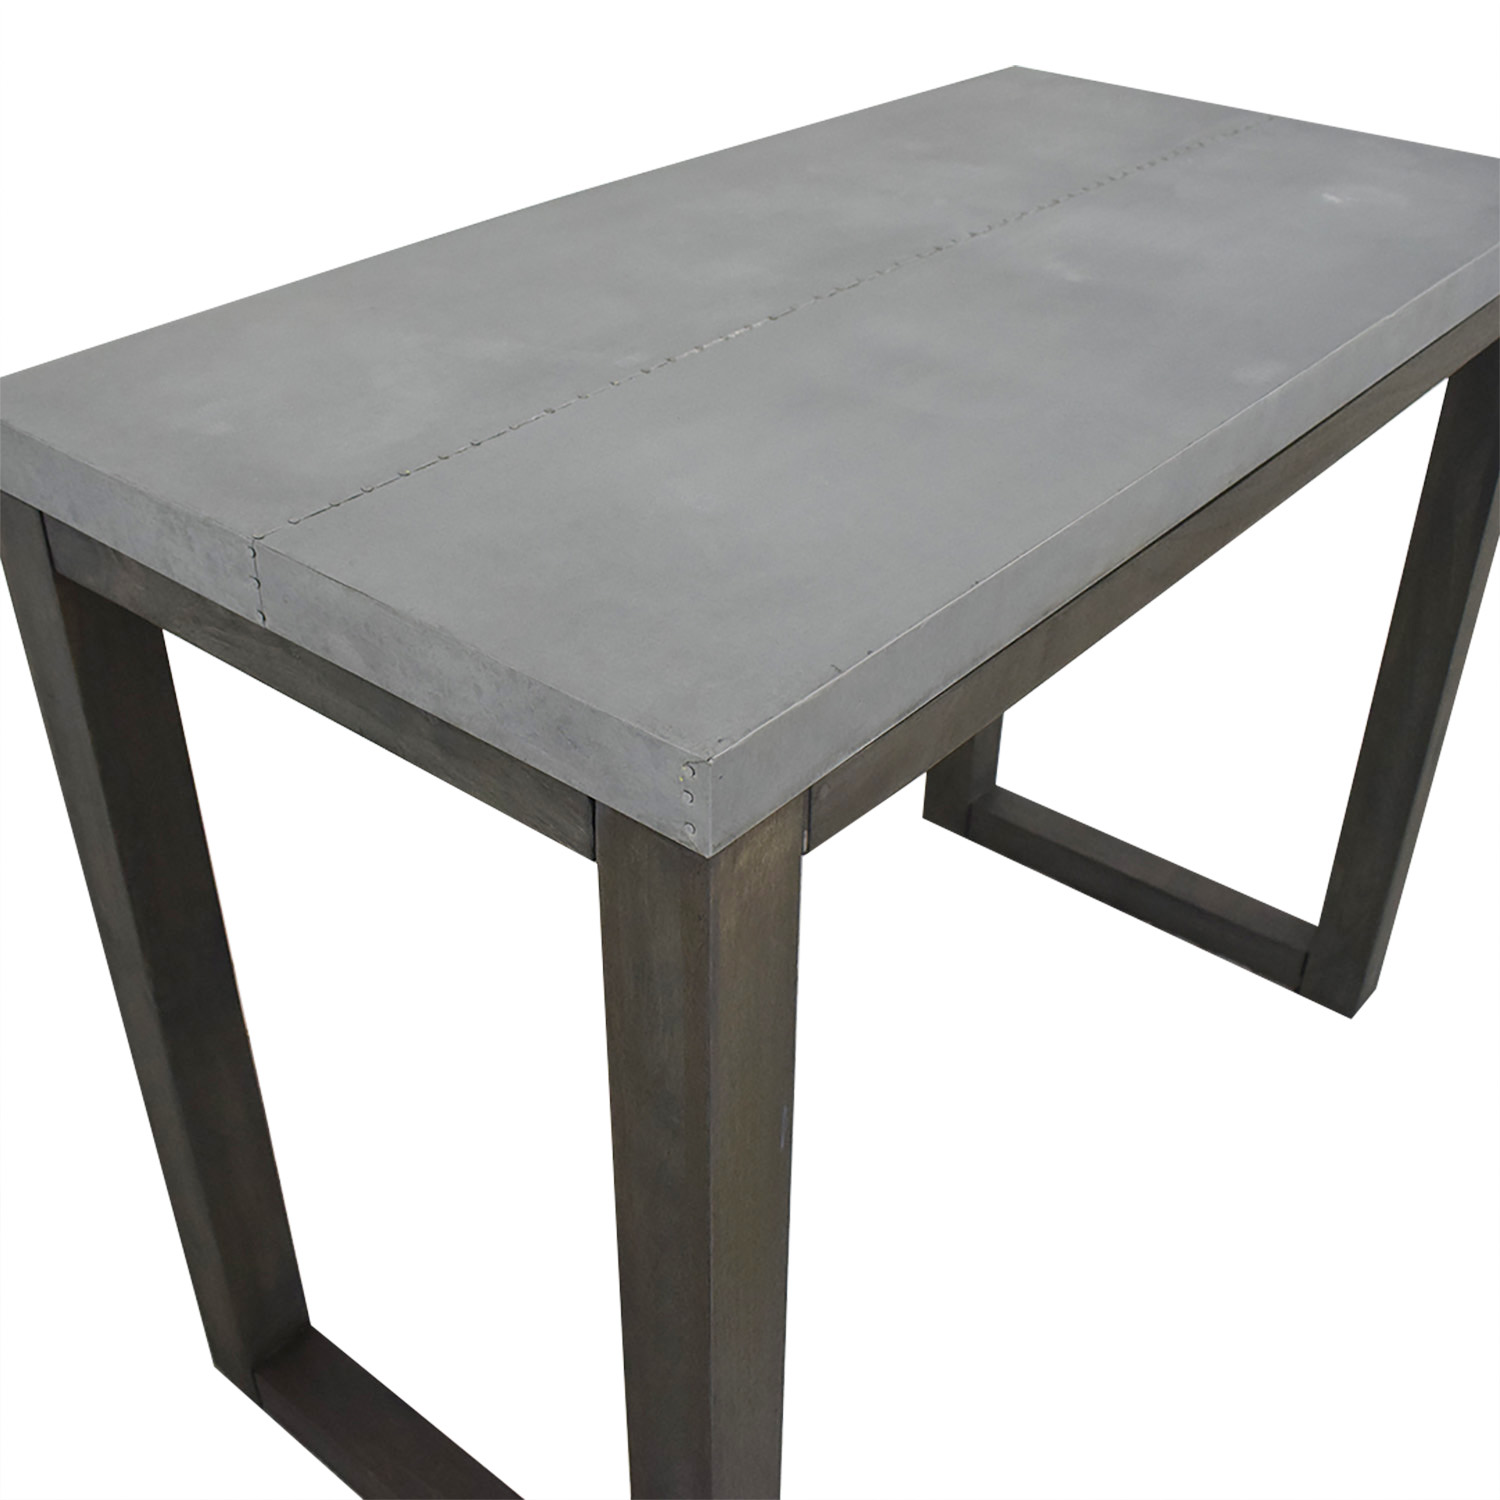 CB2 Stern Counter Table / Tables